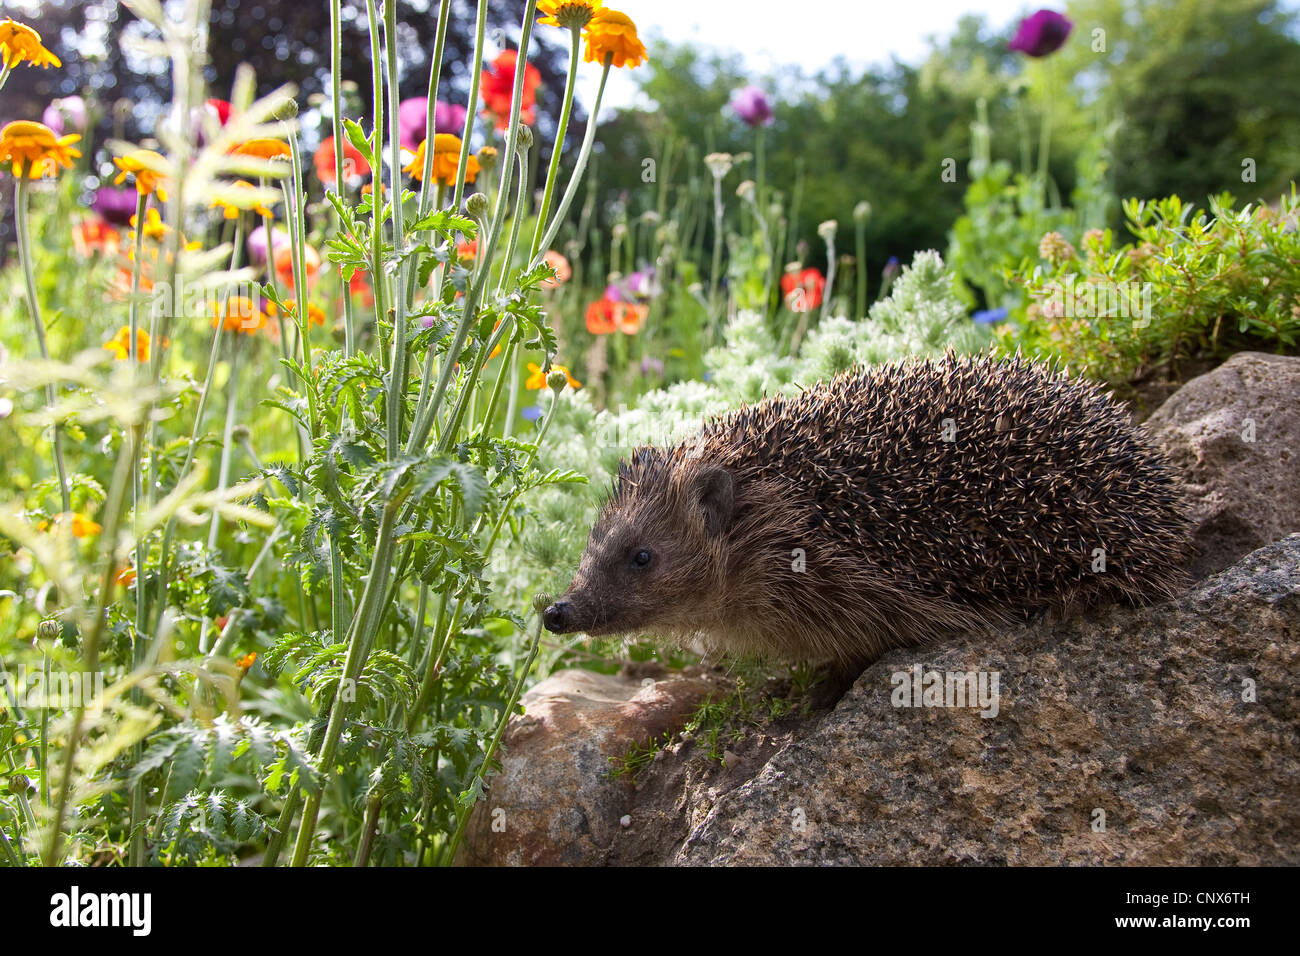 Western hedgehog, European hedgehog (Erinaceus europaeus), in the garden, Germany Stock Photo